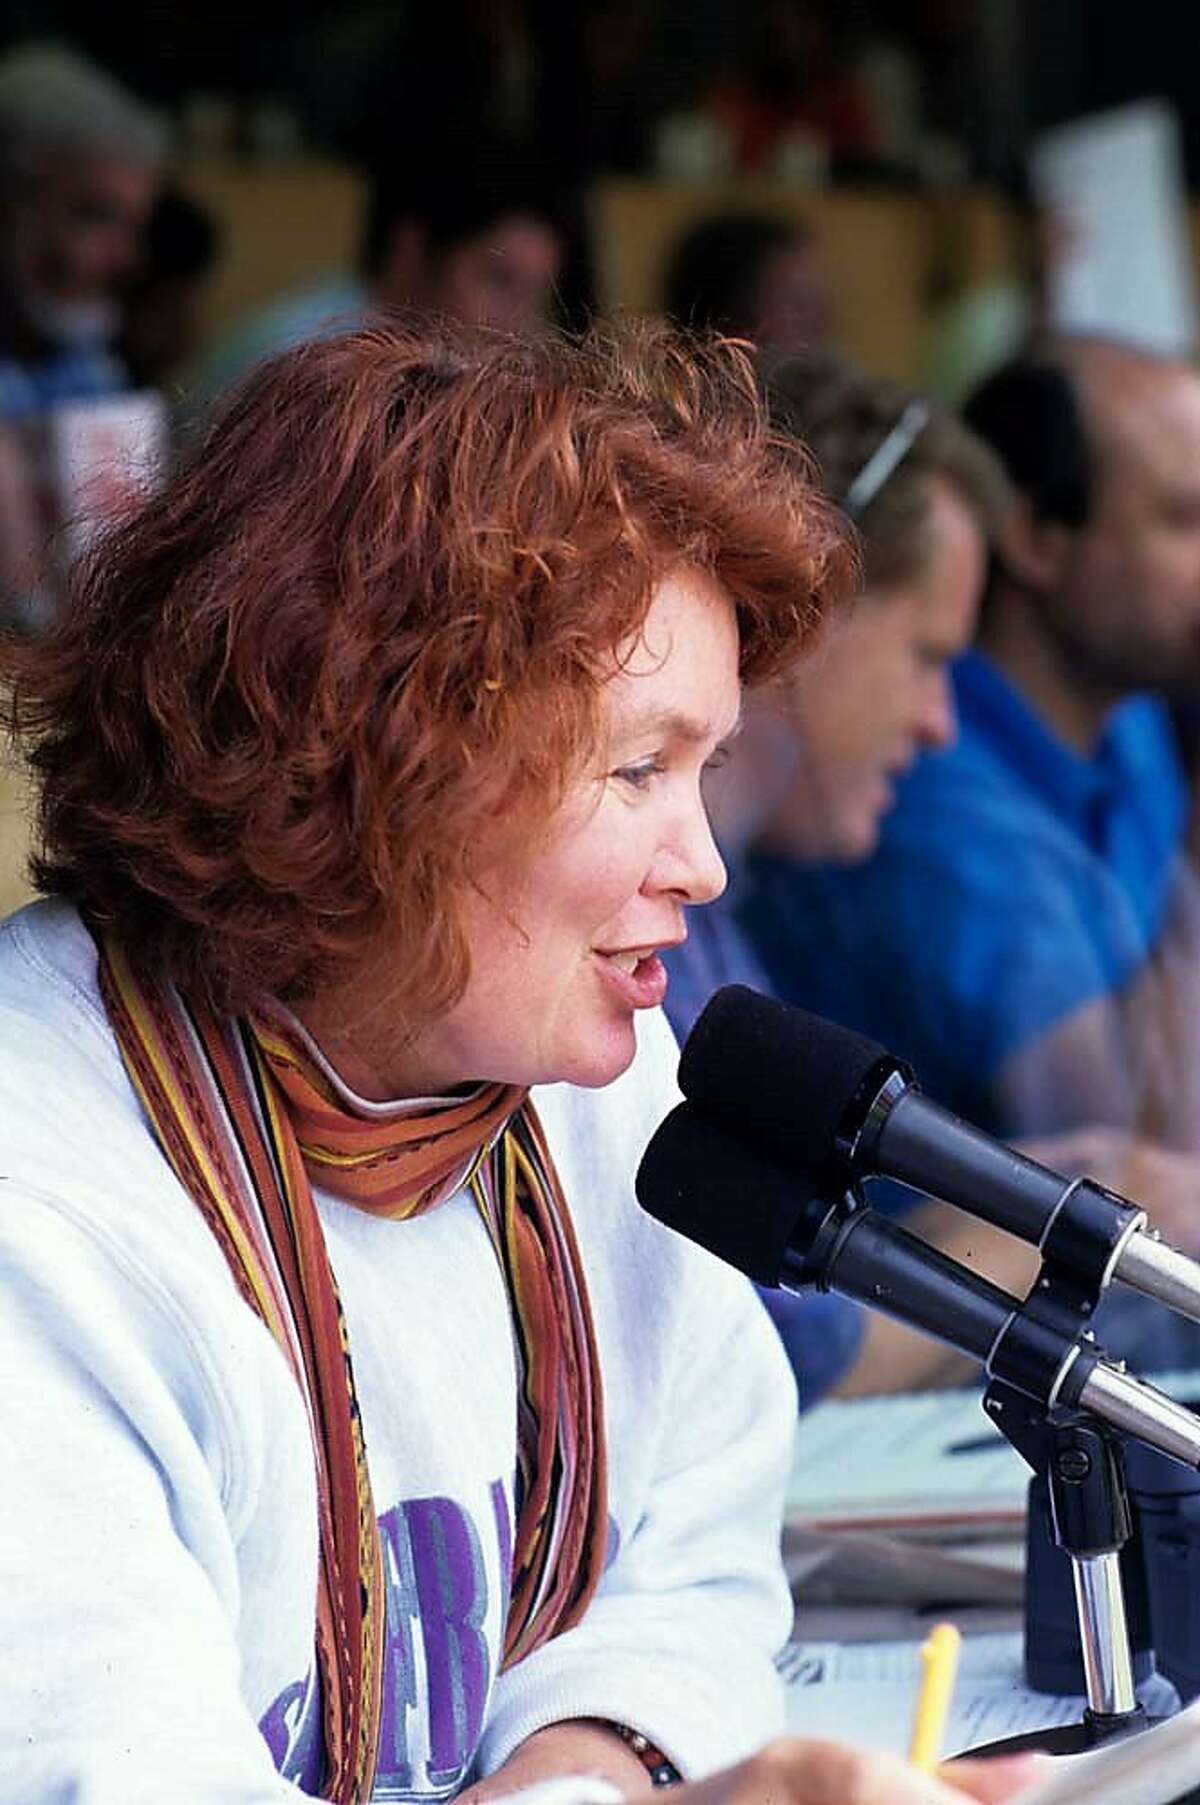 Sherry Davis at the Candlestick PA mic in 1993.